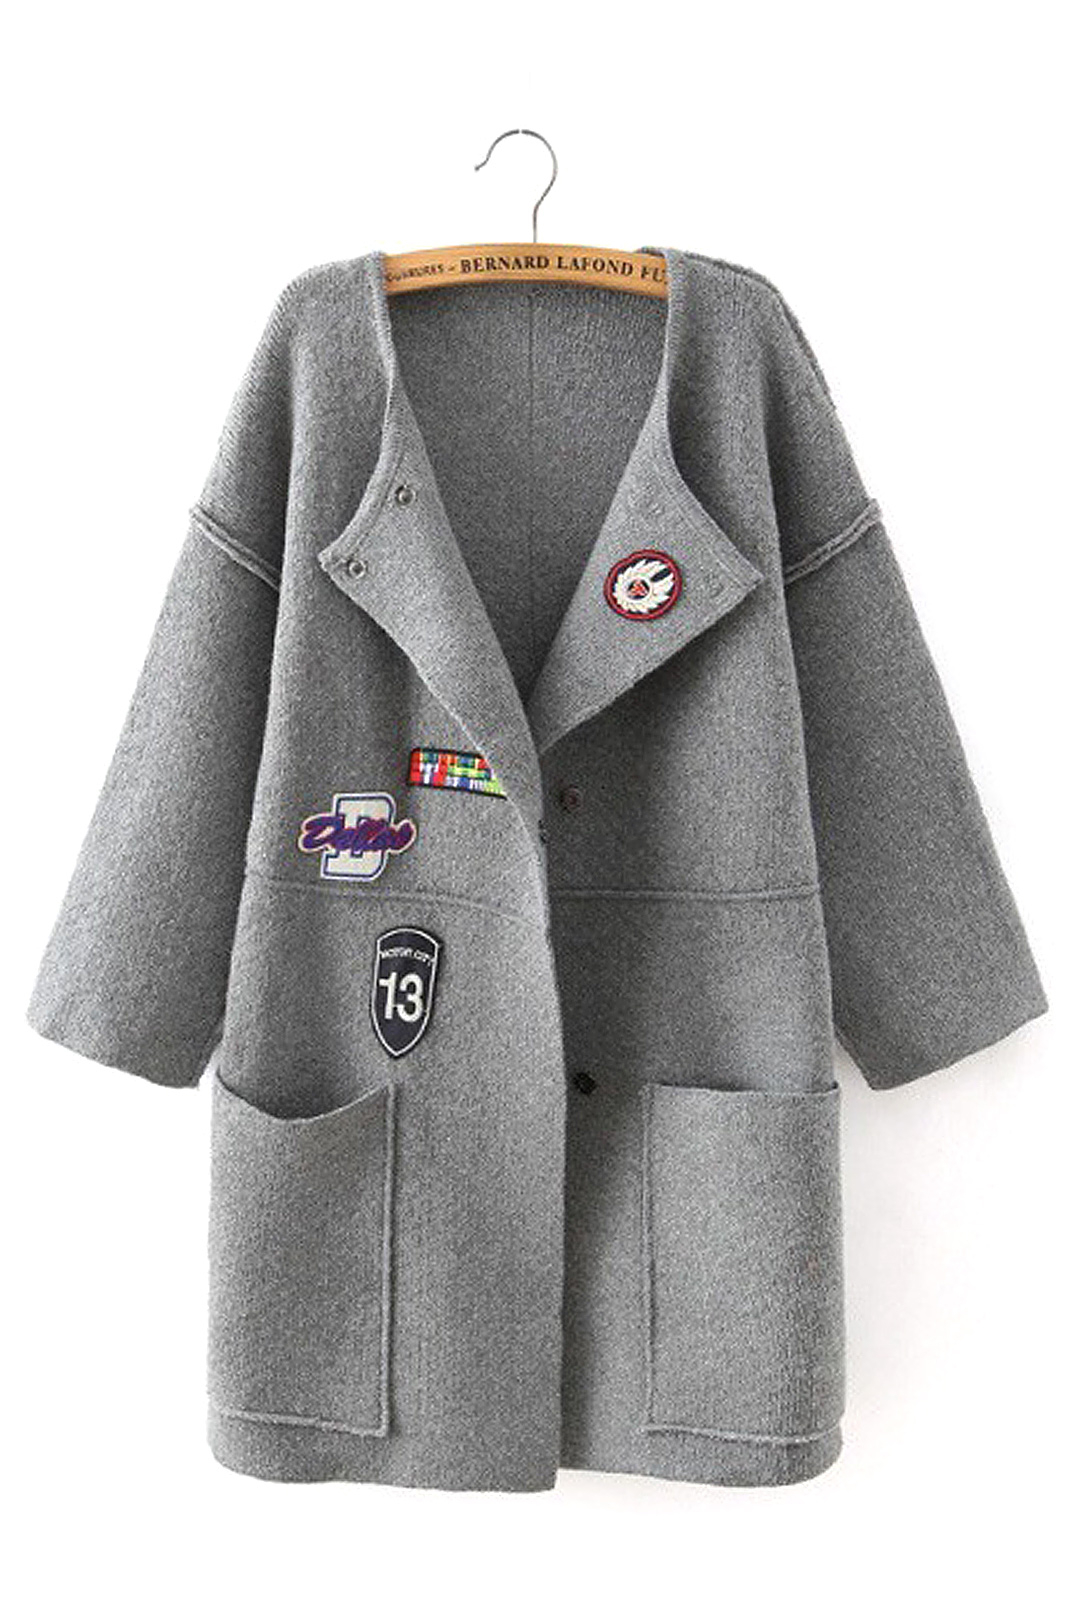 Gray Drop-shoulder Coat with Patch Pattern Detail